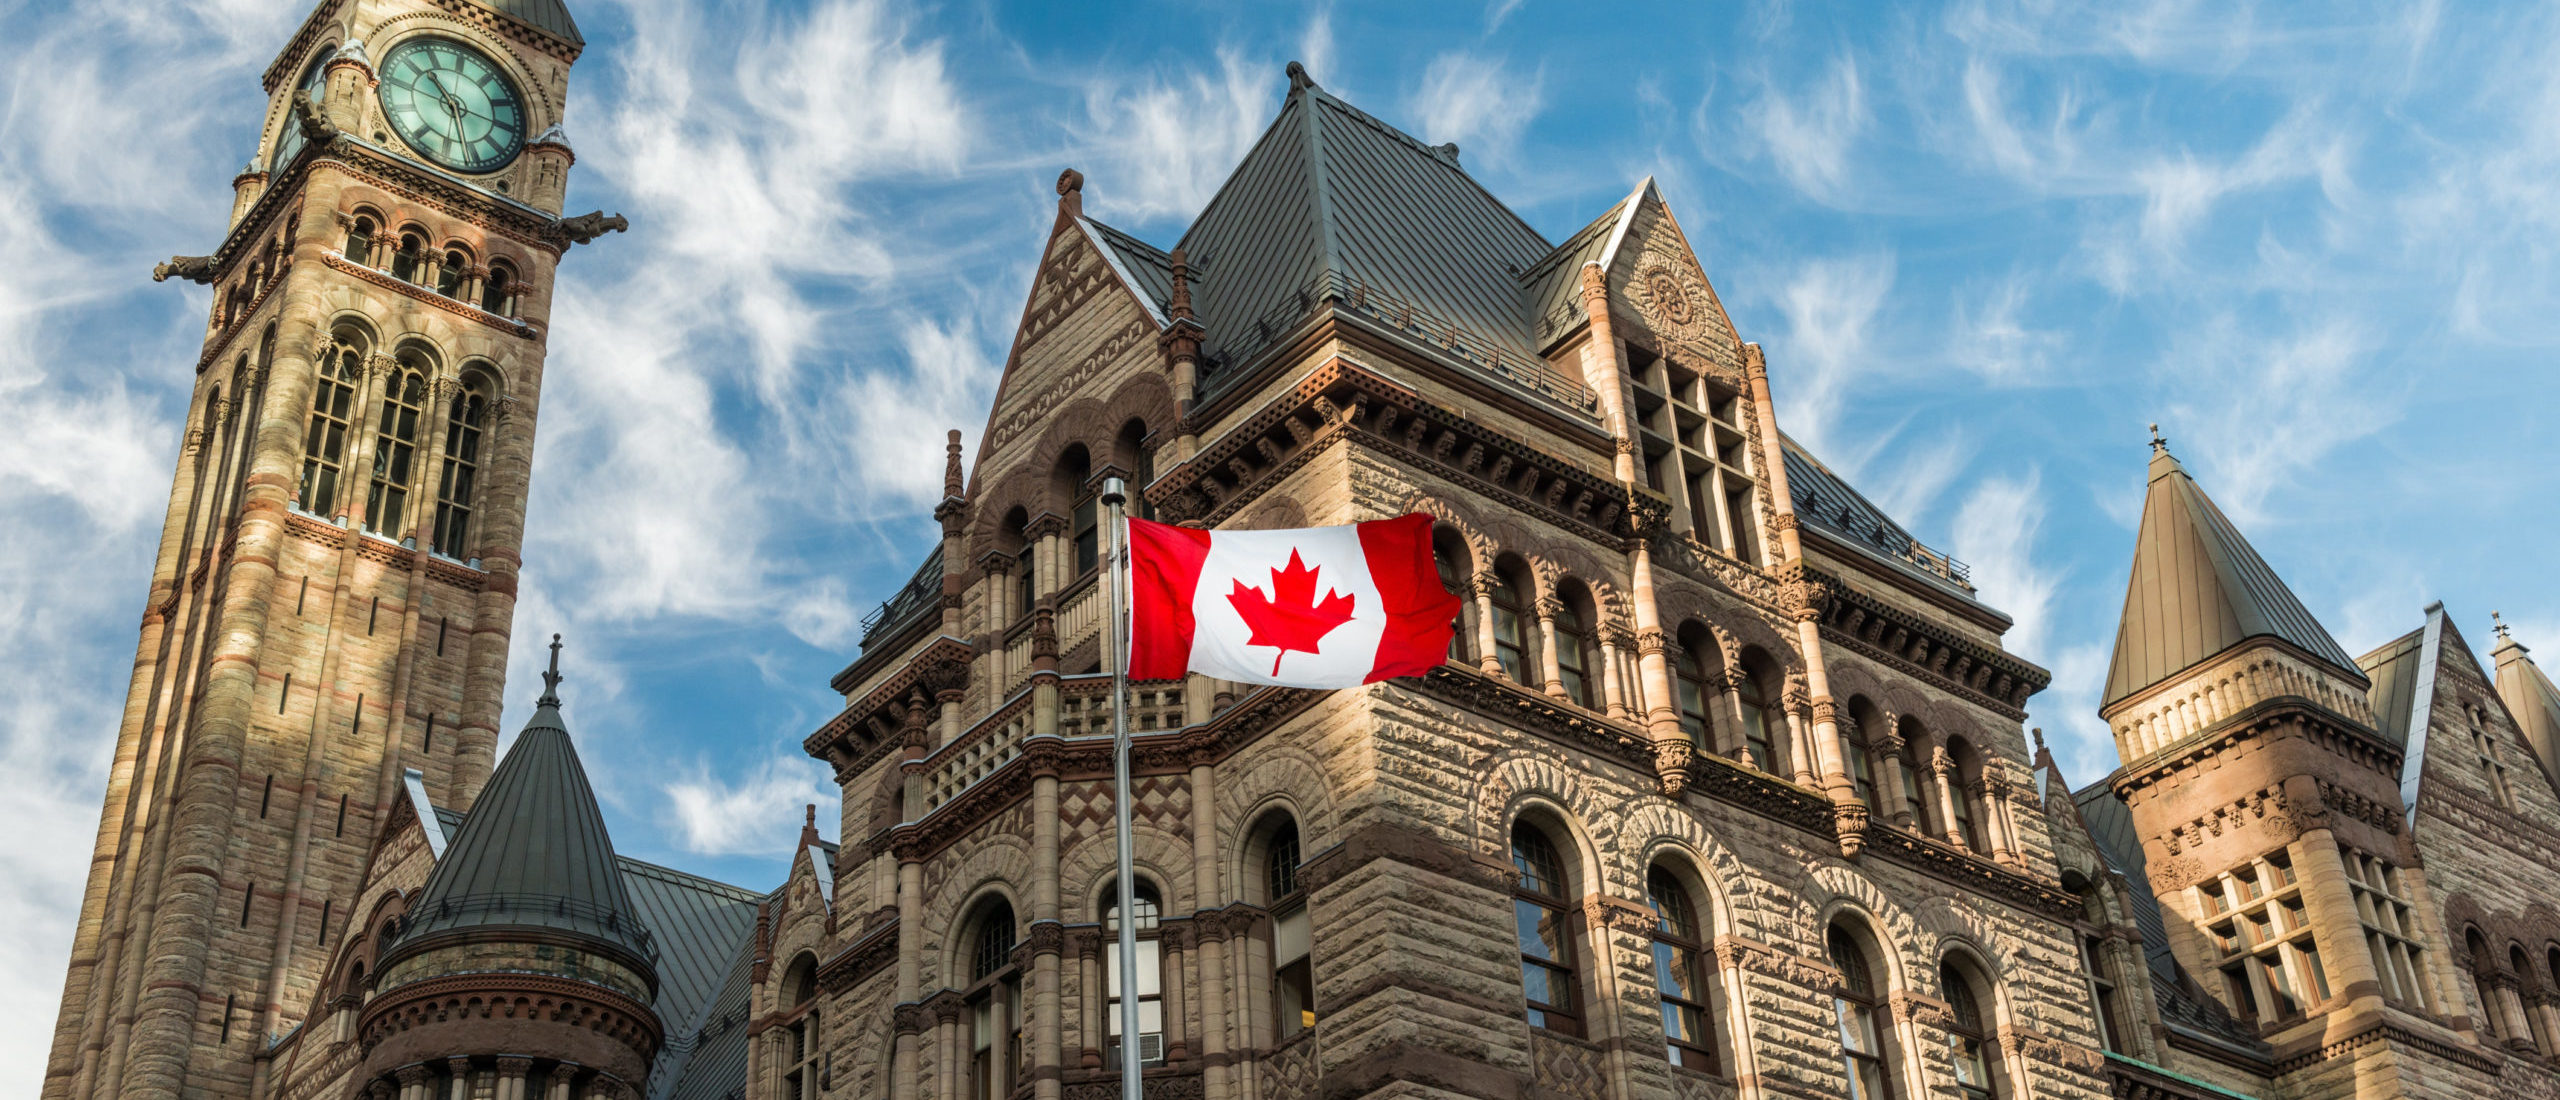 Canadian flag in front of Old City Hall in Toronto. By Joshua Davenport. Shutterstock.